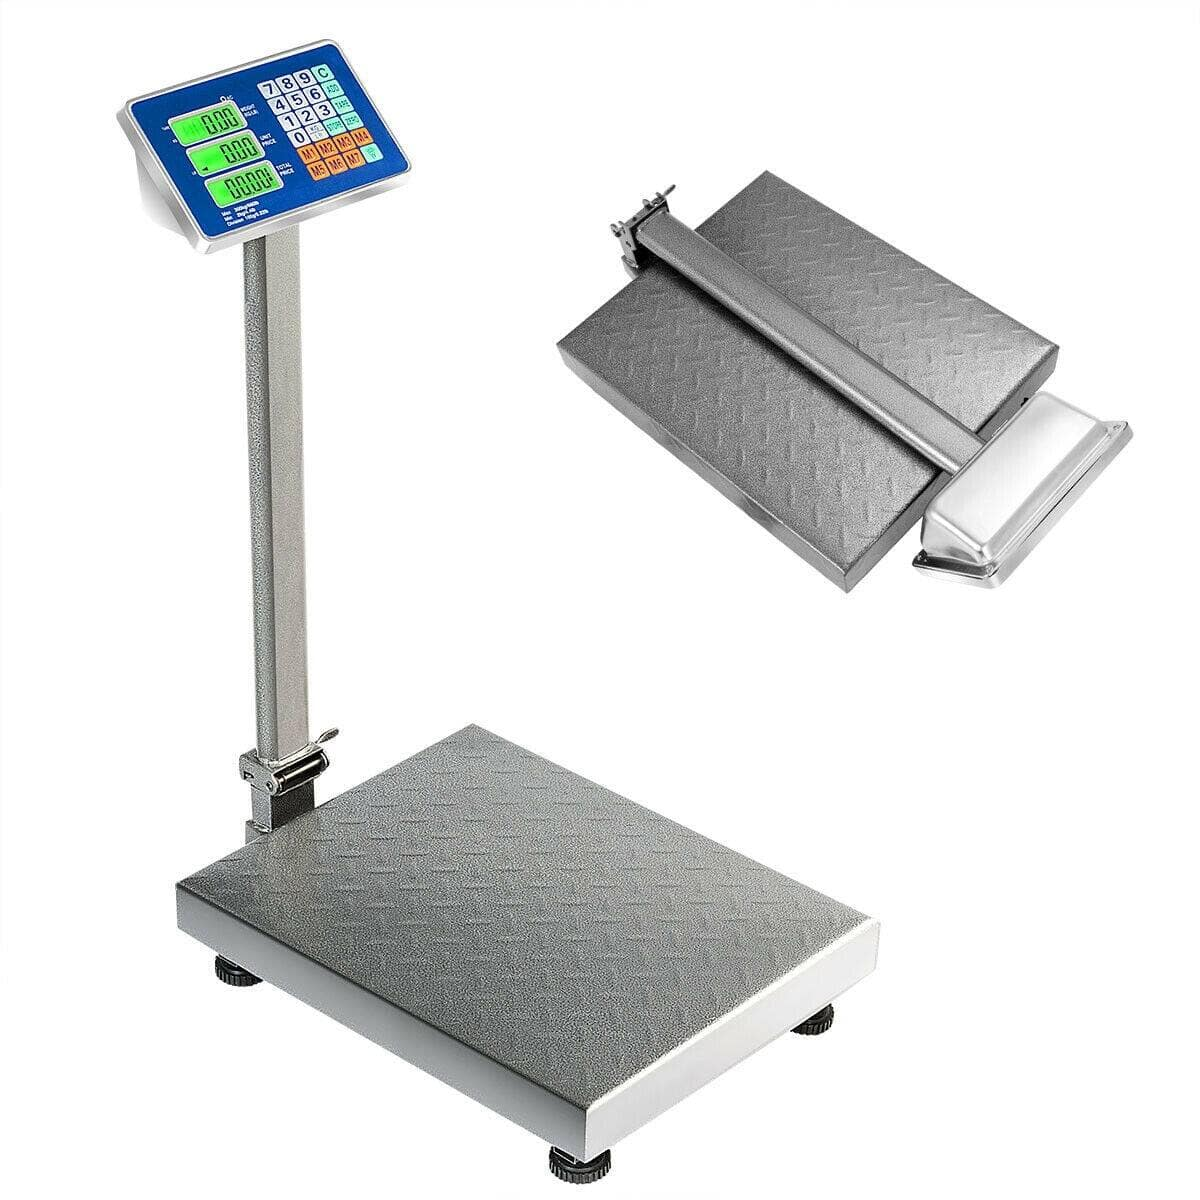 Costway 660 lbs Weight Platform Scale Digital Floor Folding Scale $84.95 + Free Shipping